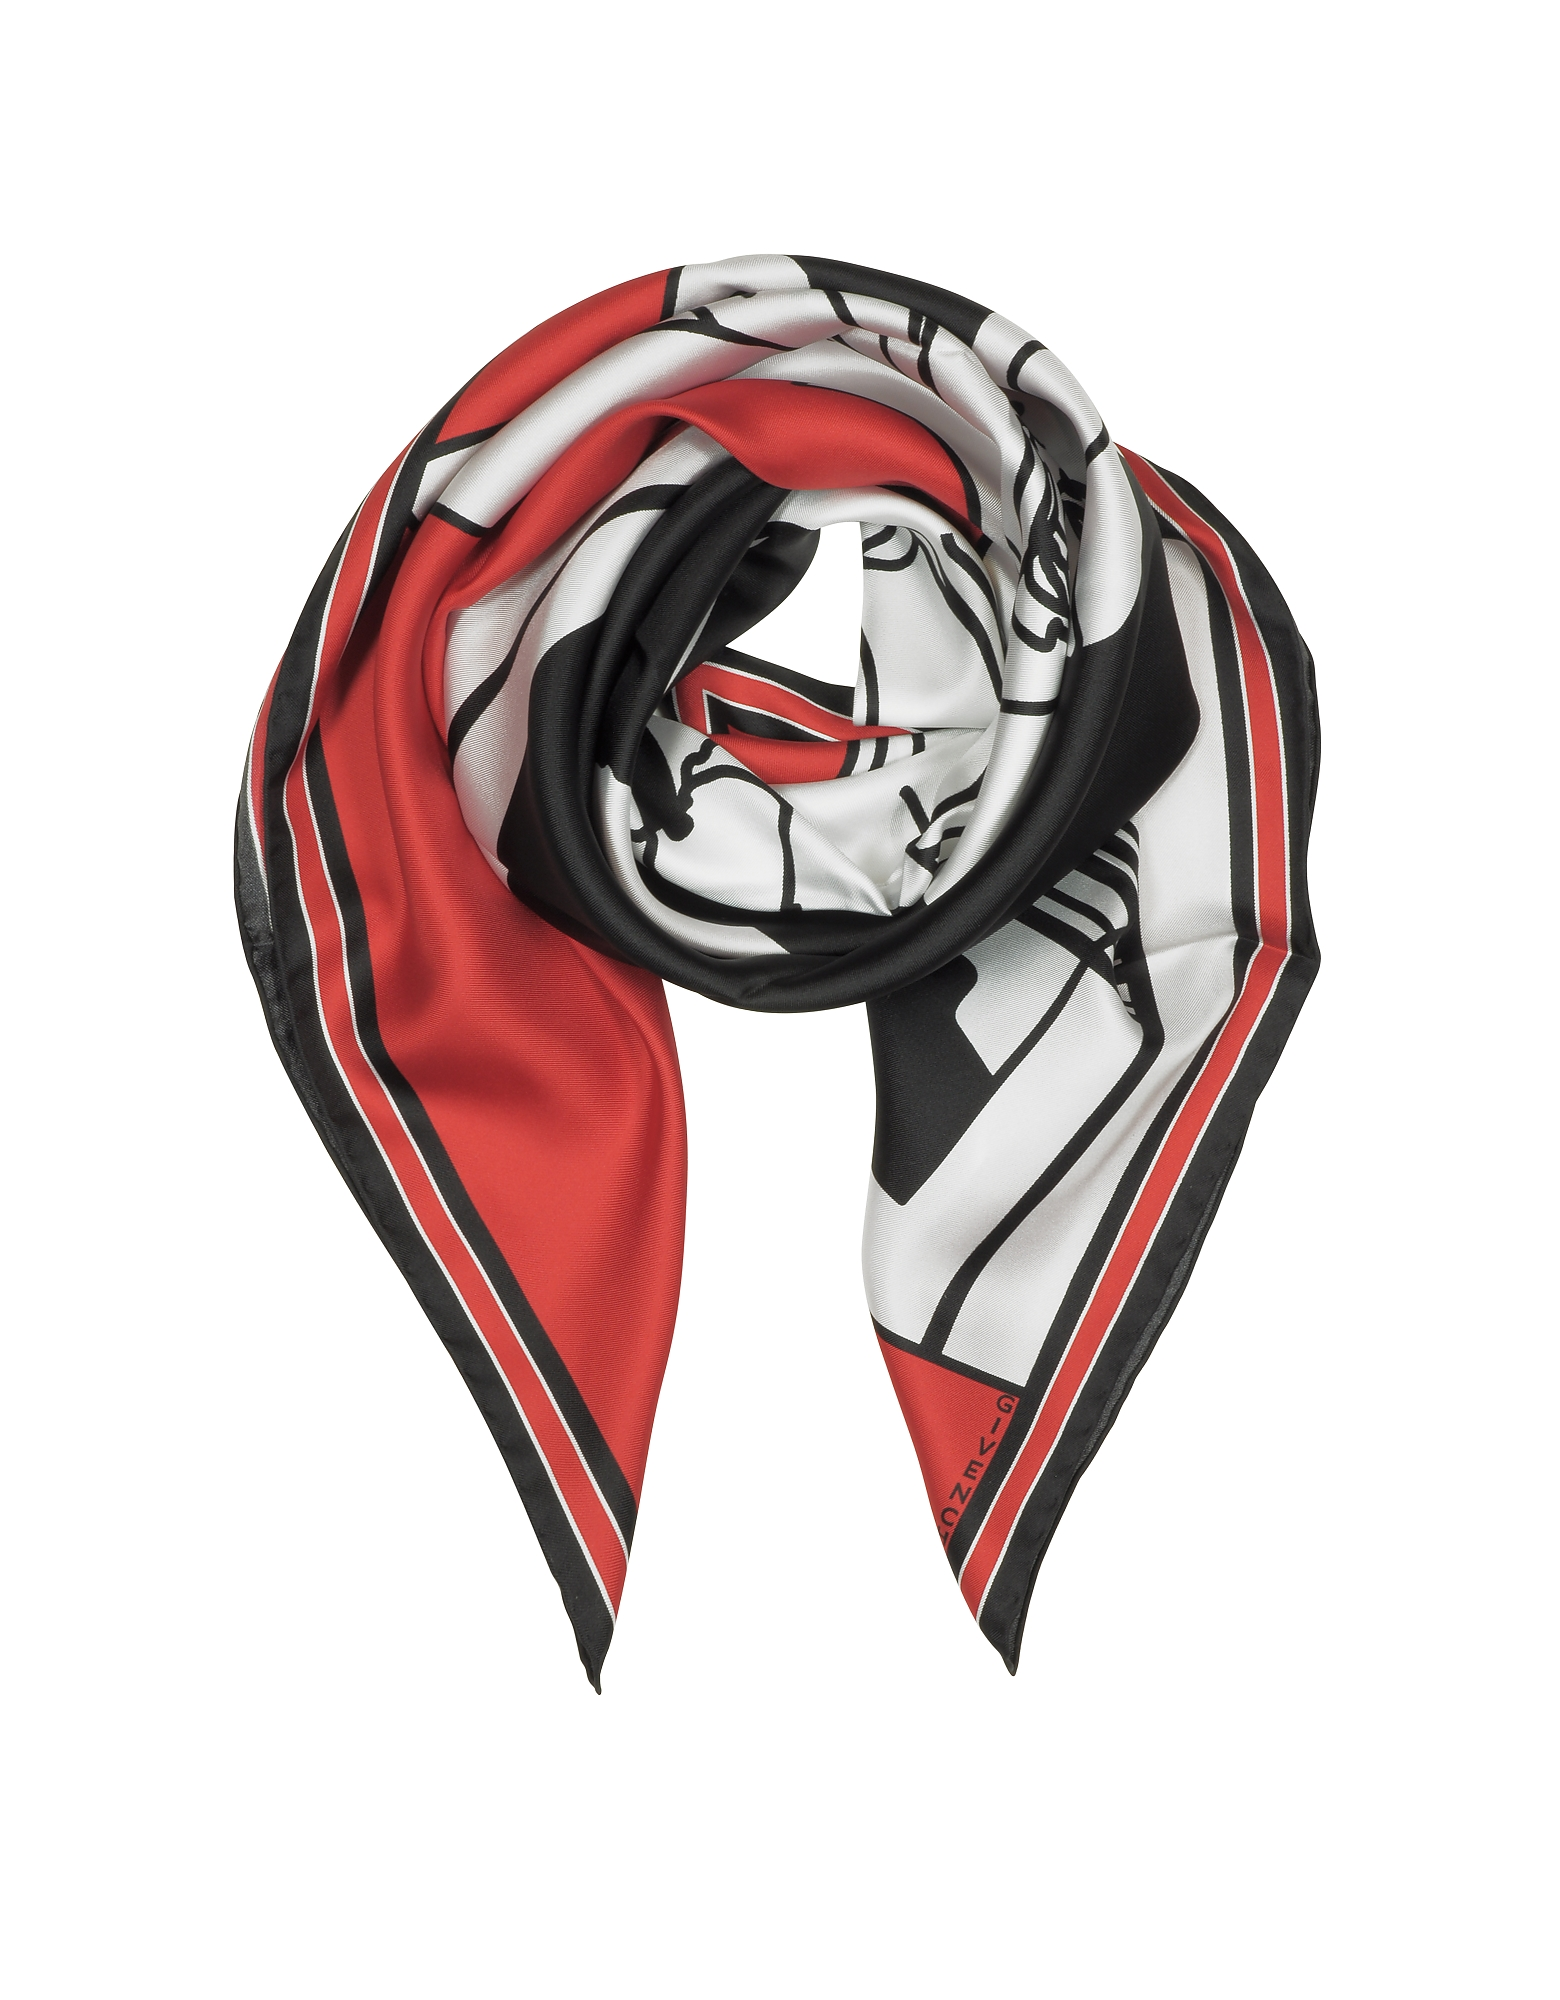 Givenchy Square Scarves, Bambi Print Red Silk Square Scarf